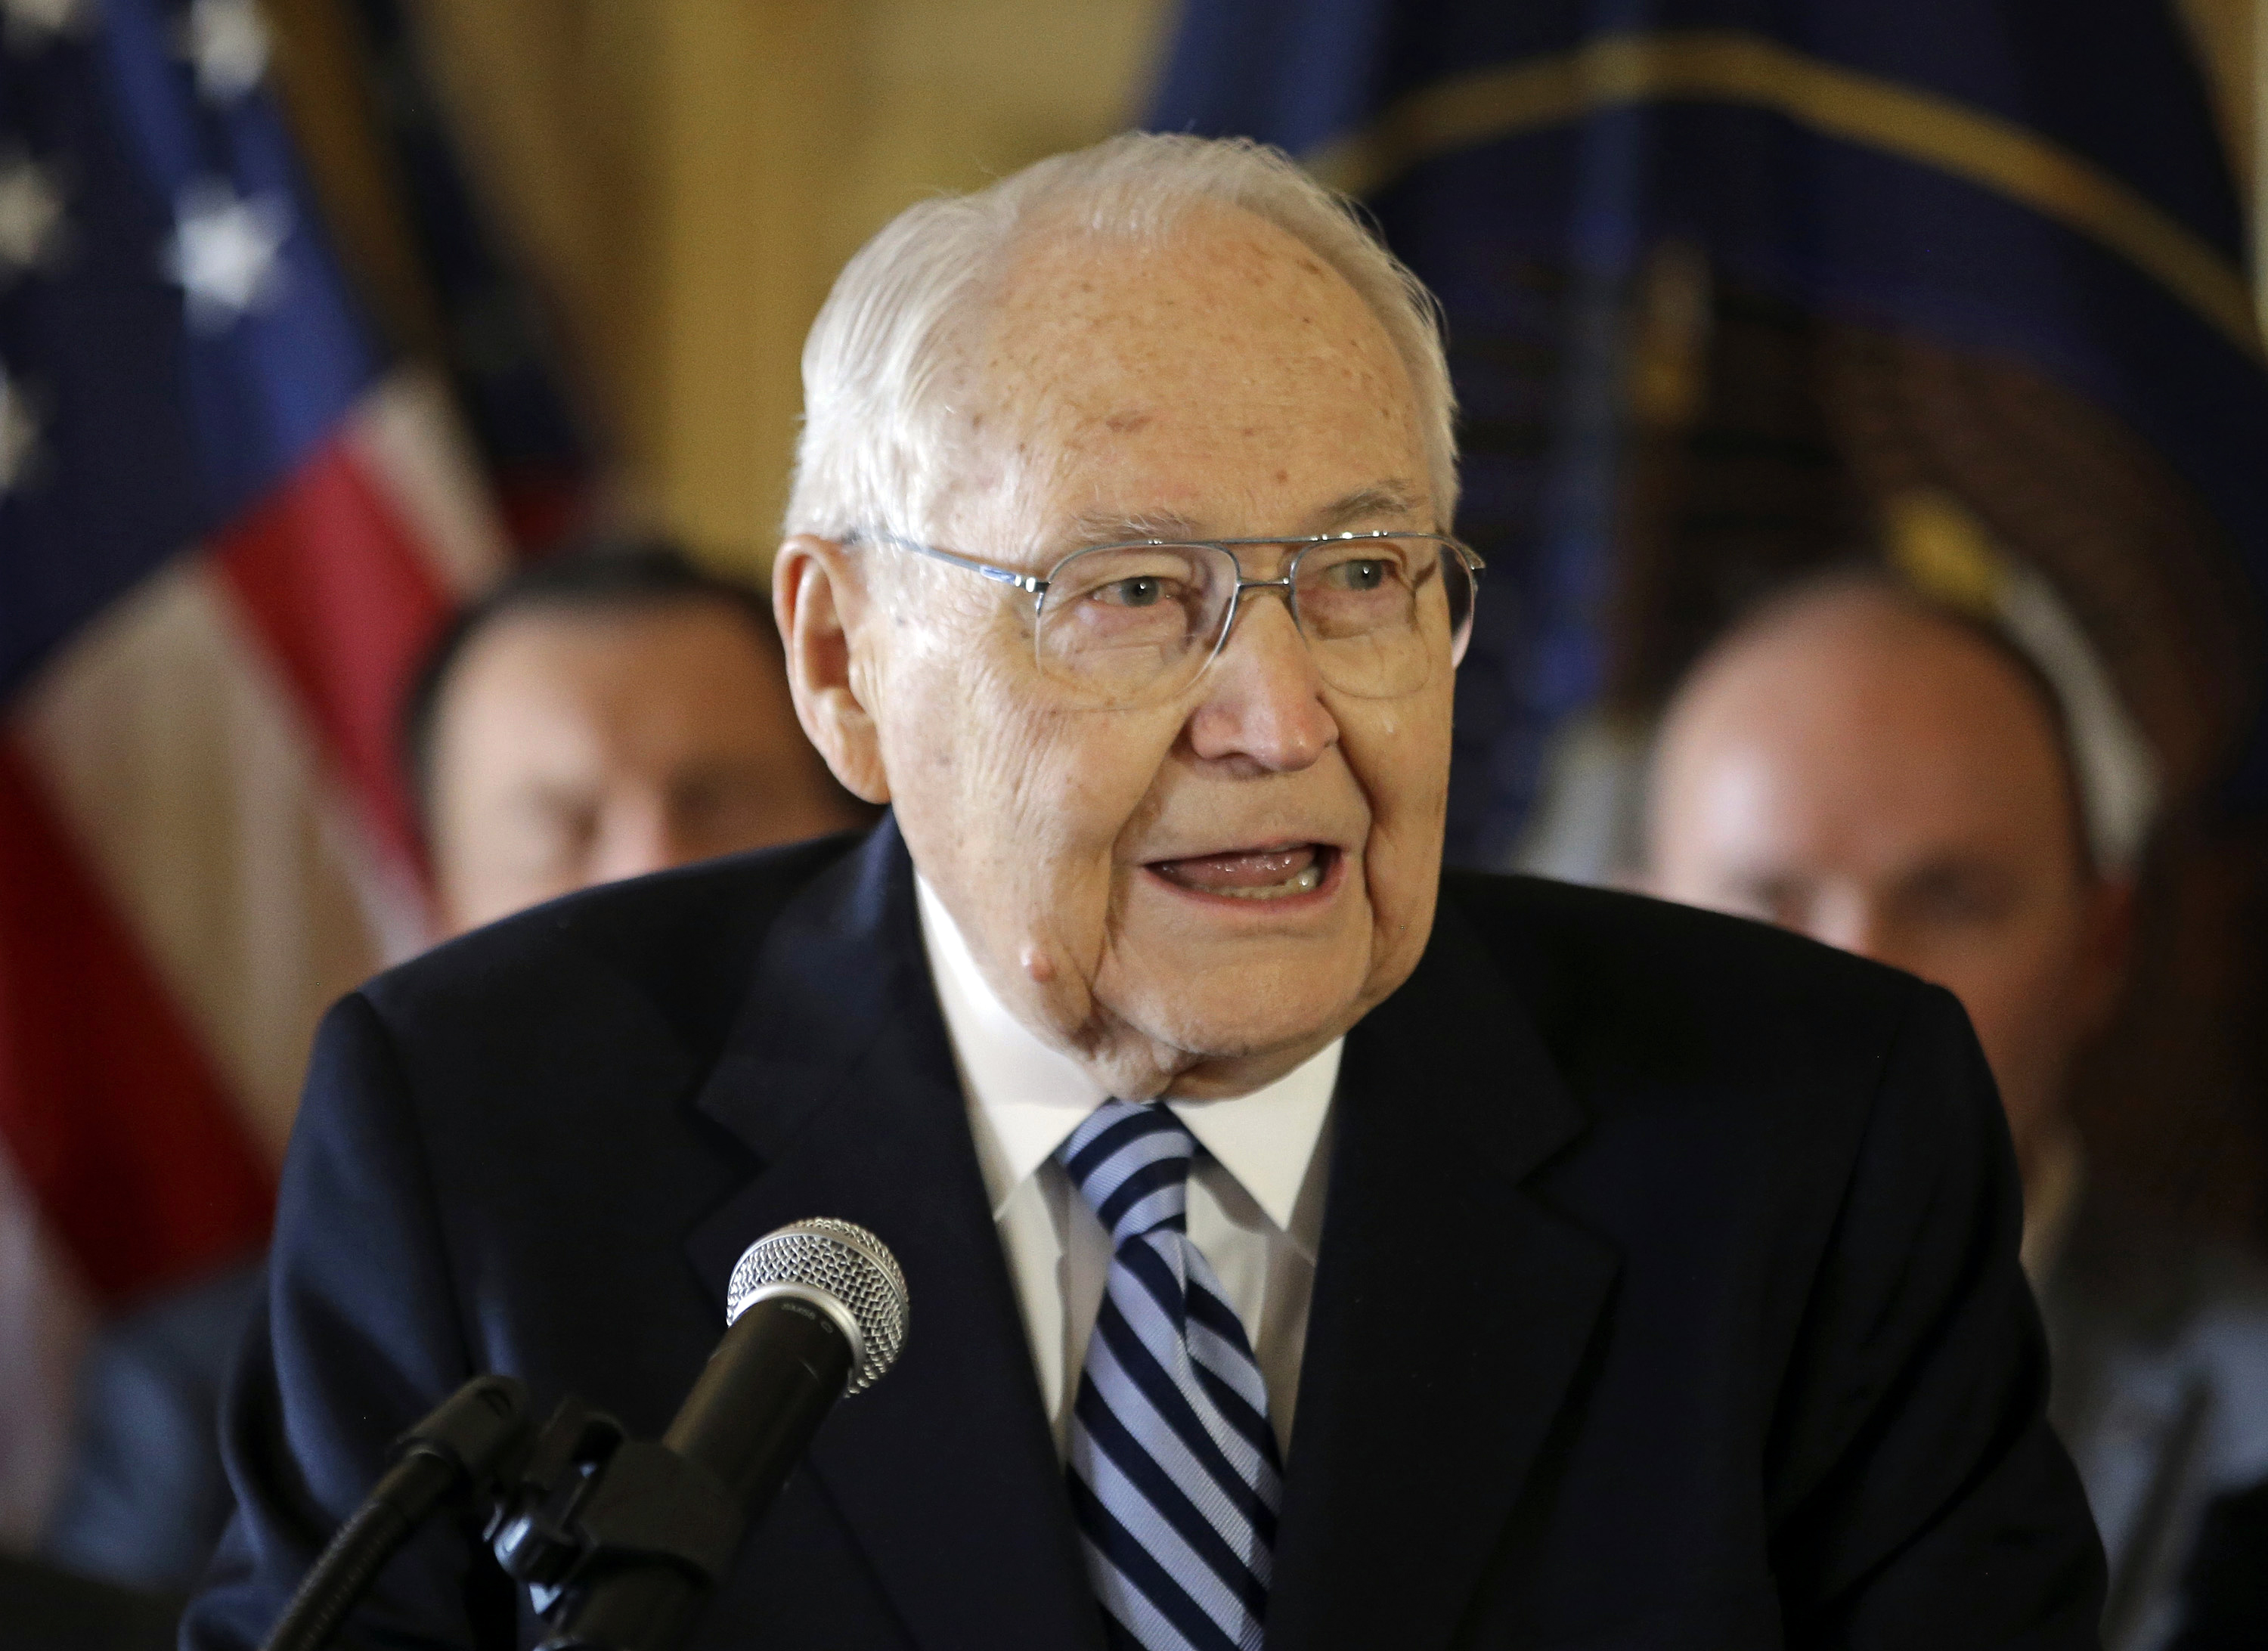 In this March 4, 2015, file photo, Elder L. Tom Perry, the second-most senior member of the high-level Mormon governing body called the Quorum of the Twelve Apostles, speaks during a news conference at the Utah State Capitol in Salt Lake City.